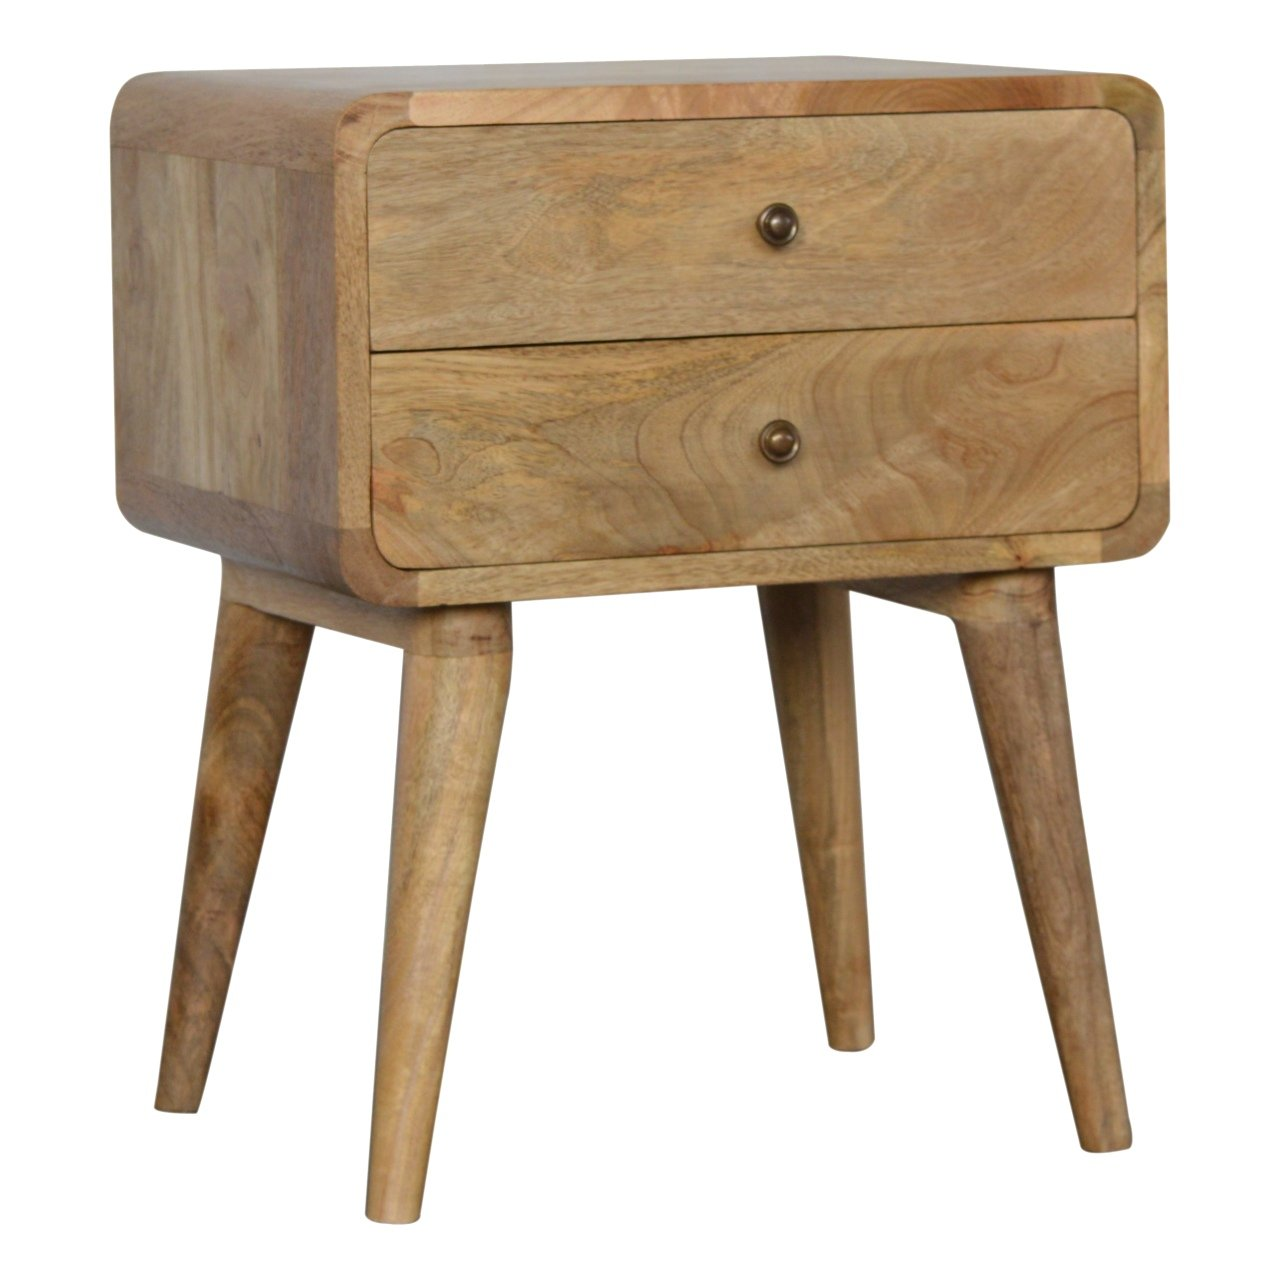 Nordic Curve 2 Drawer Solid Eco Friendly Mango Wood Bedside Table Unit Light Oak Or Dark Chestnut